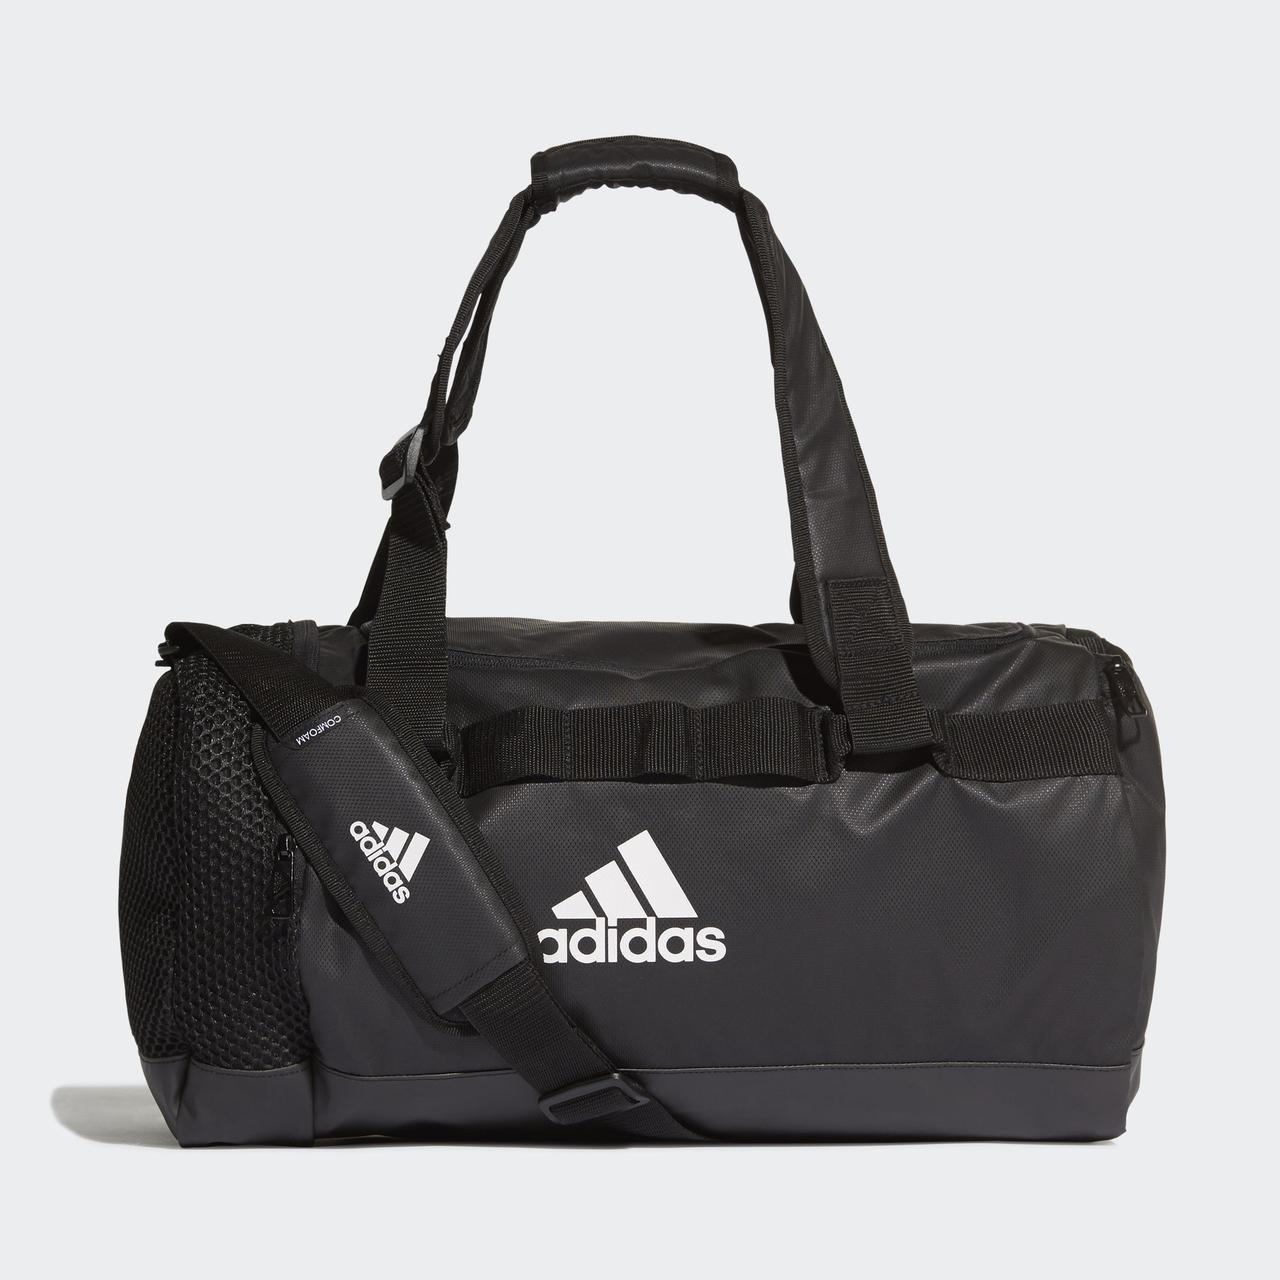 44e8f824 Спортивная сумка adidas Training Convertible DT4844 - 2019: продажа ...